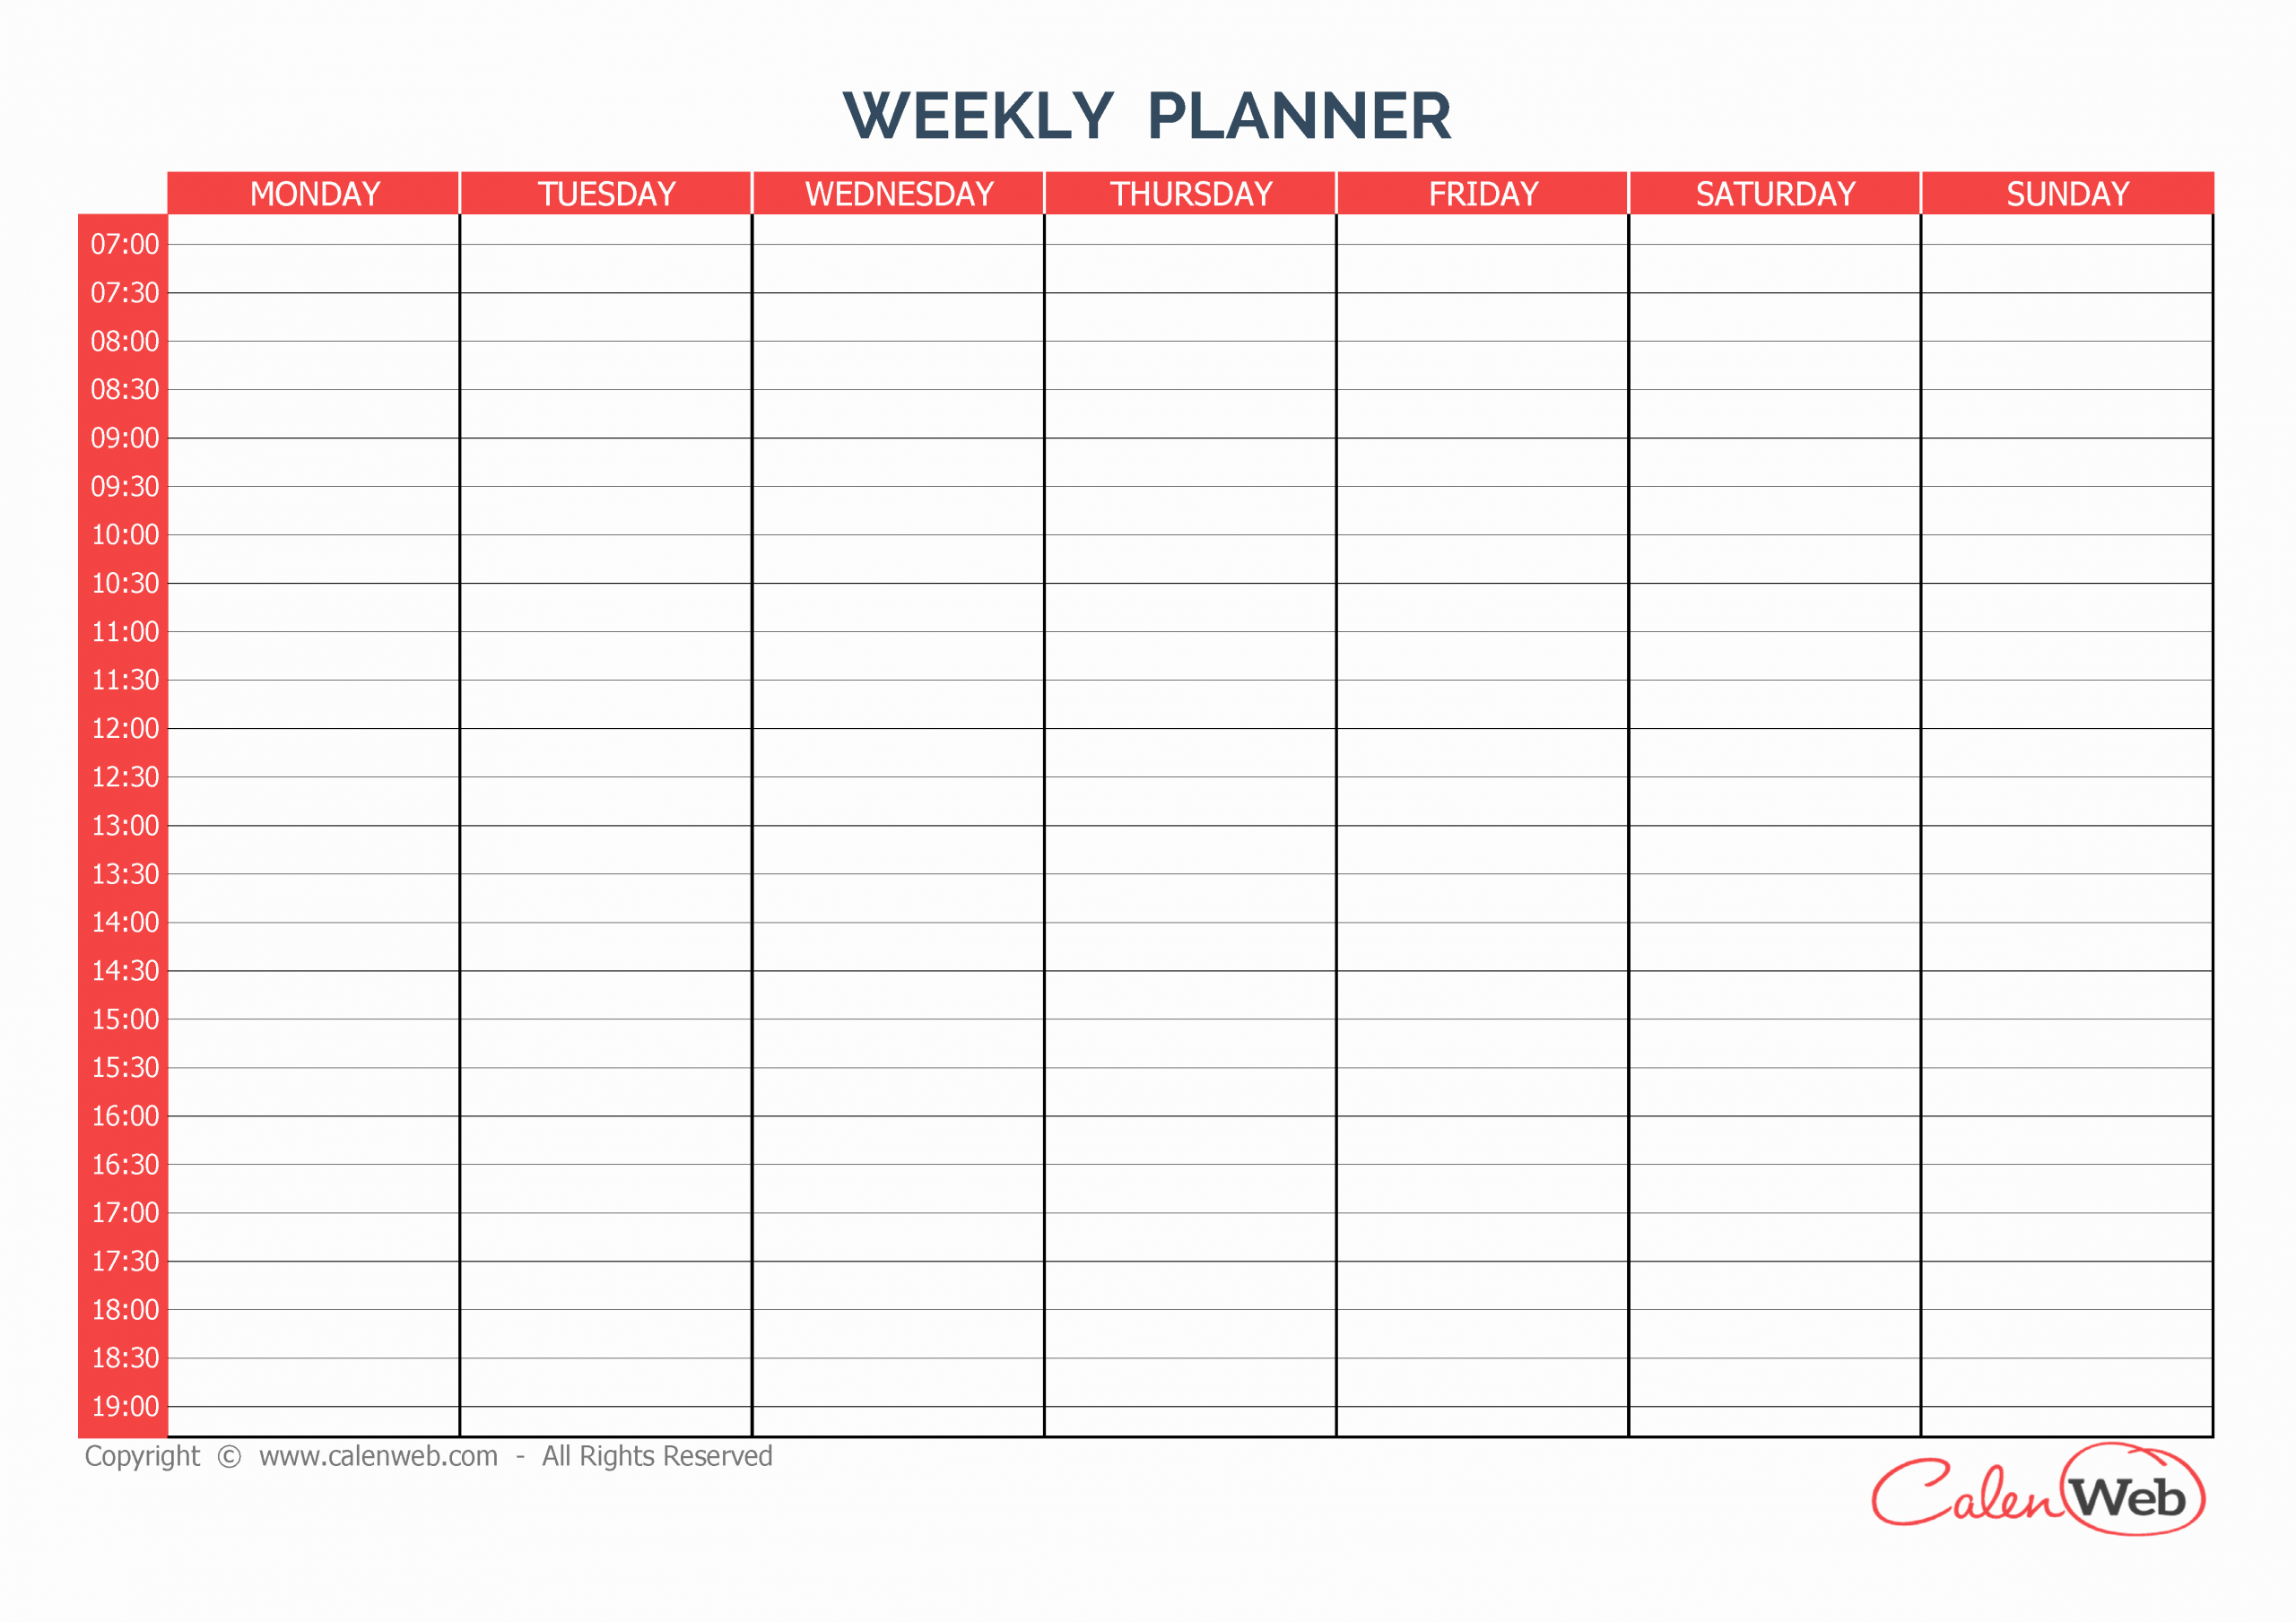 7 Day Work Schedule Template Lovely Weekly Planner 7 Days First Day Monday A Week Of 7 Days